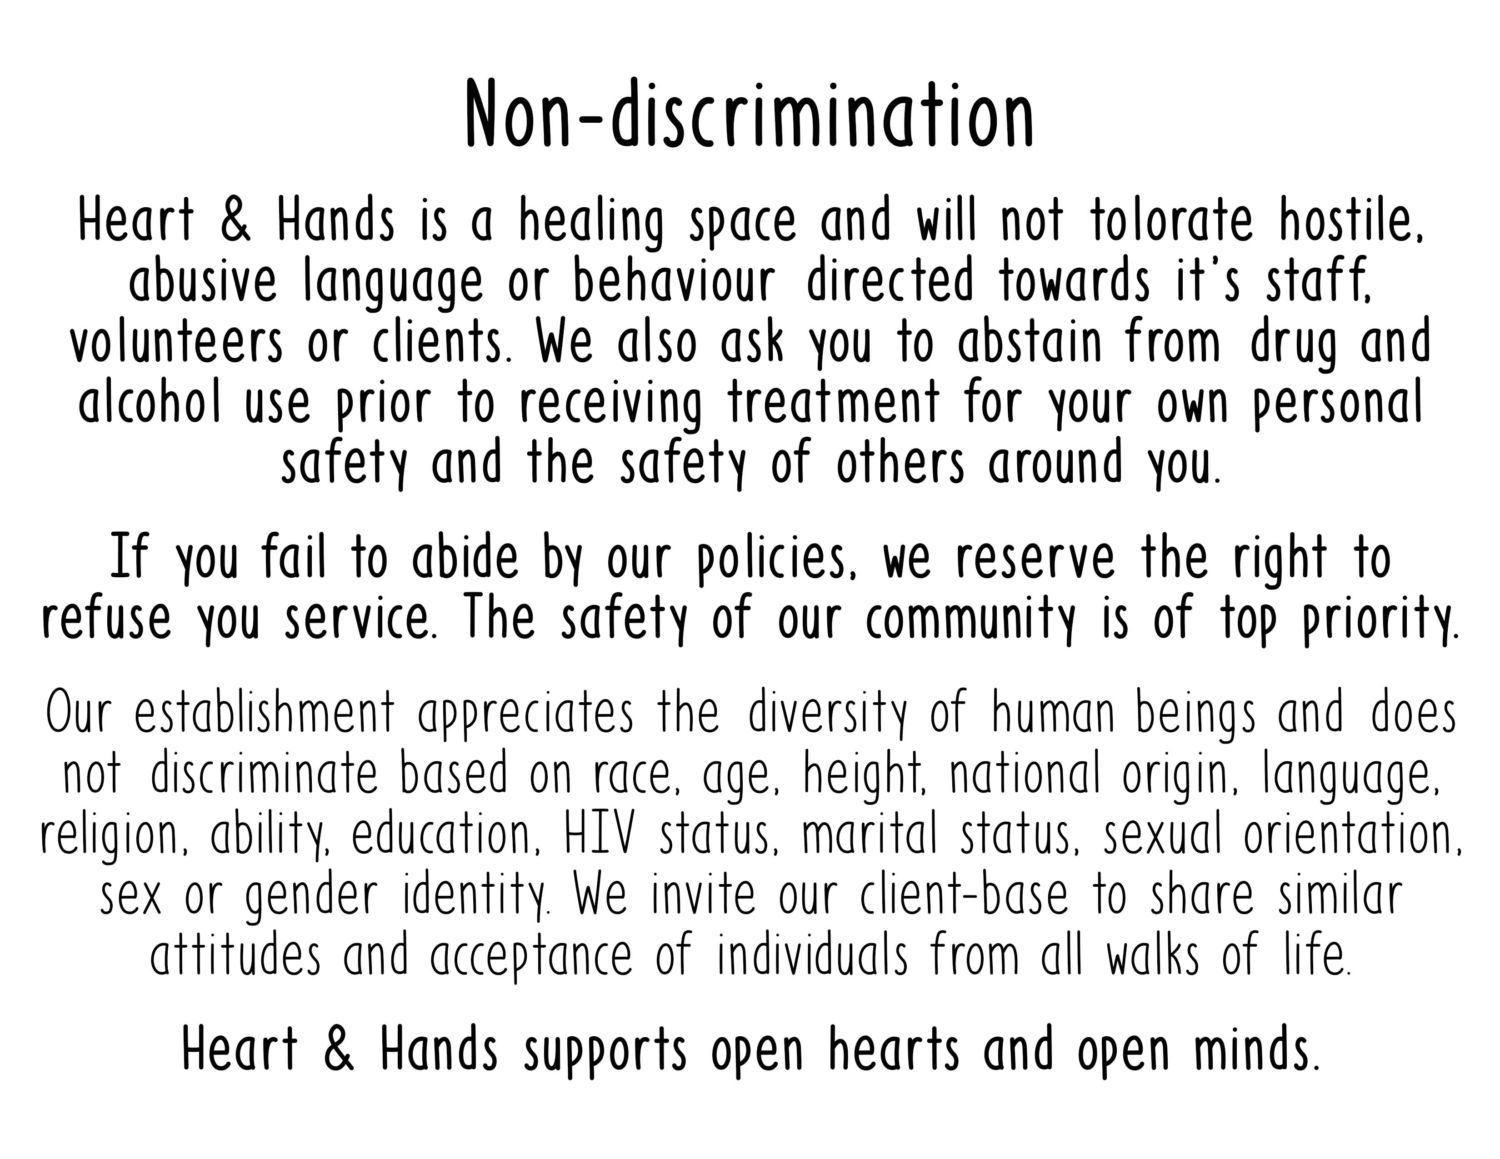 Non-discrimination, part 2